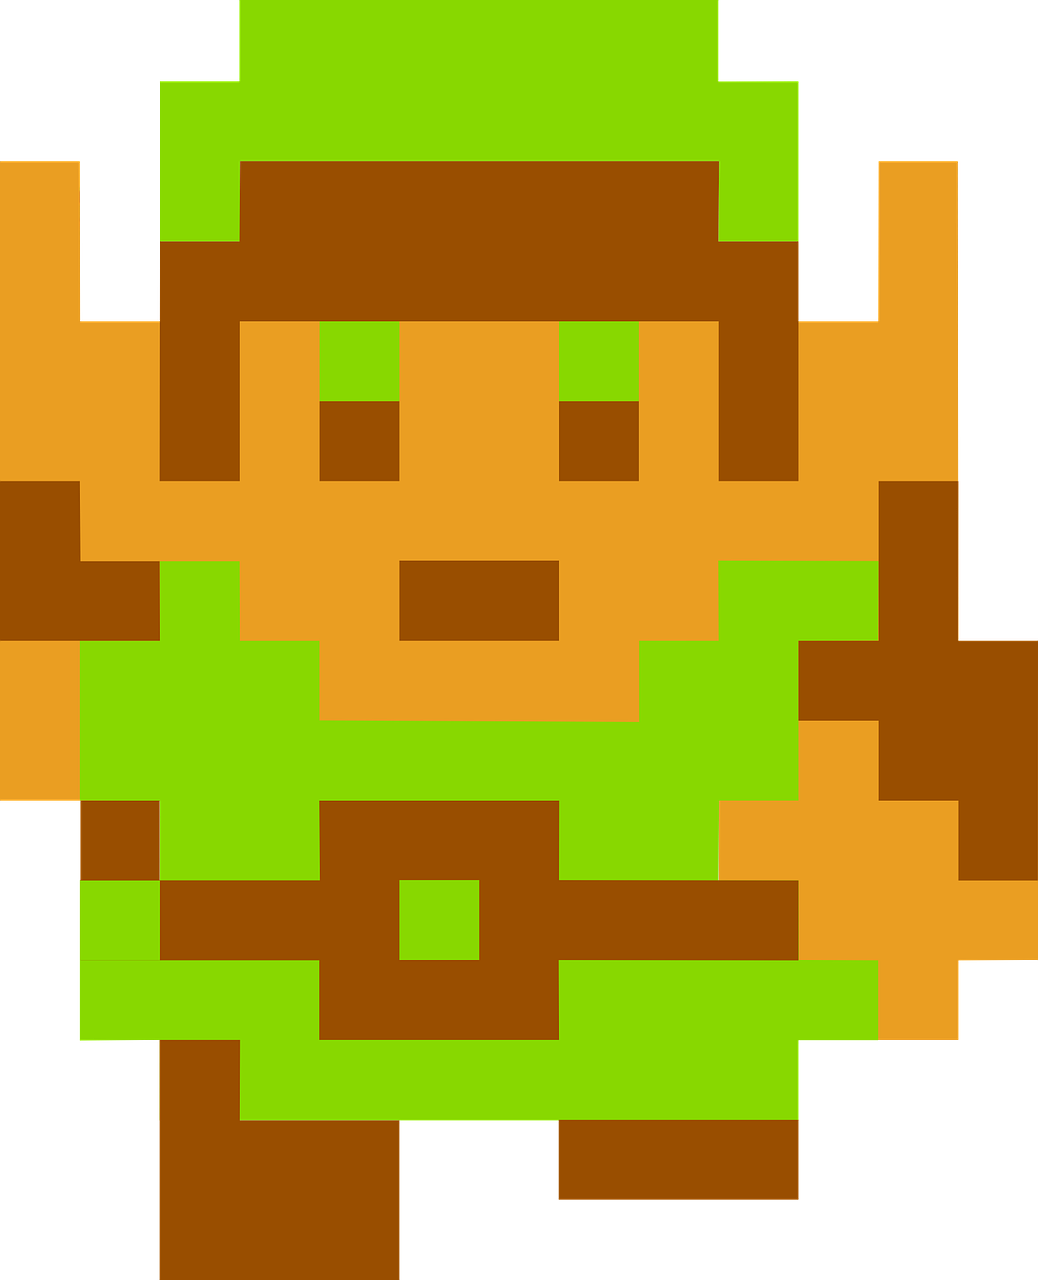 zelda,link,legend,nes,nintendo,famicon,triforce,free vector graphics,free pictures, free photos, free images, royalty free, free illustrations, public domain